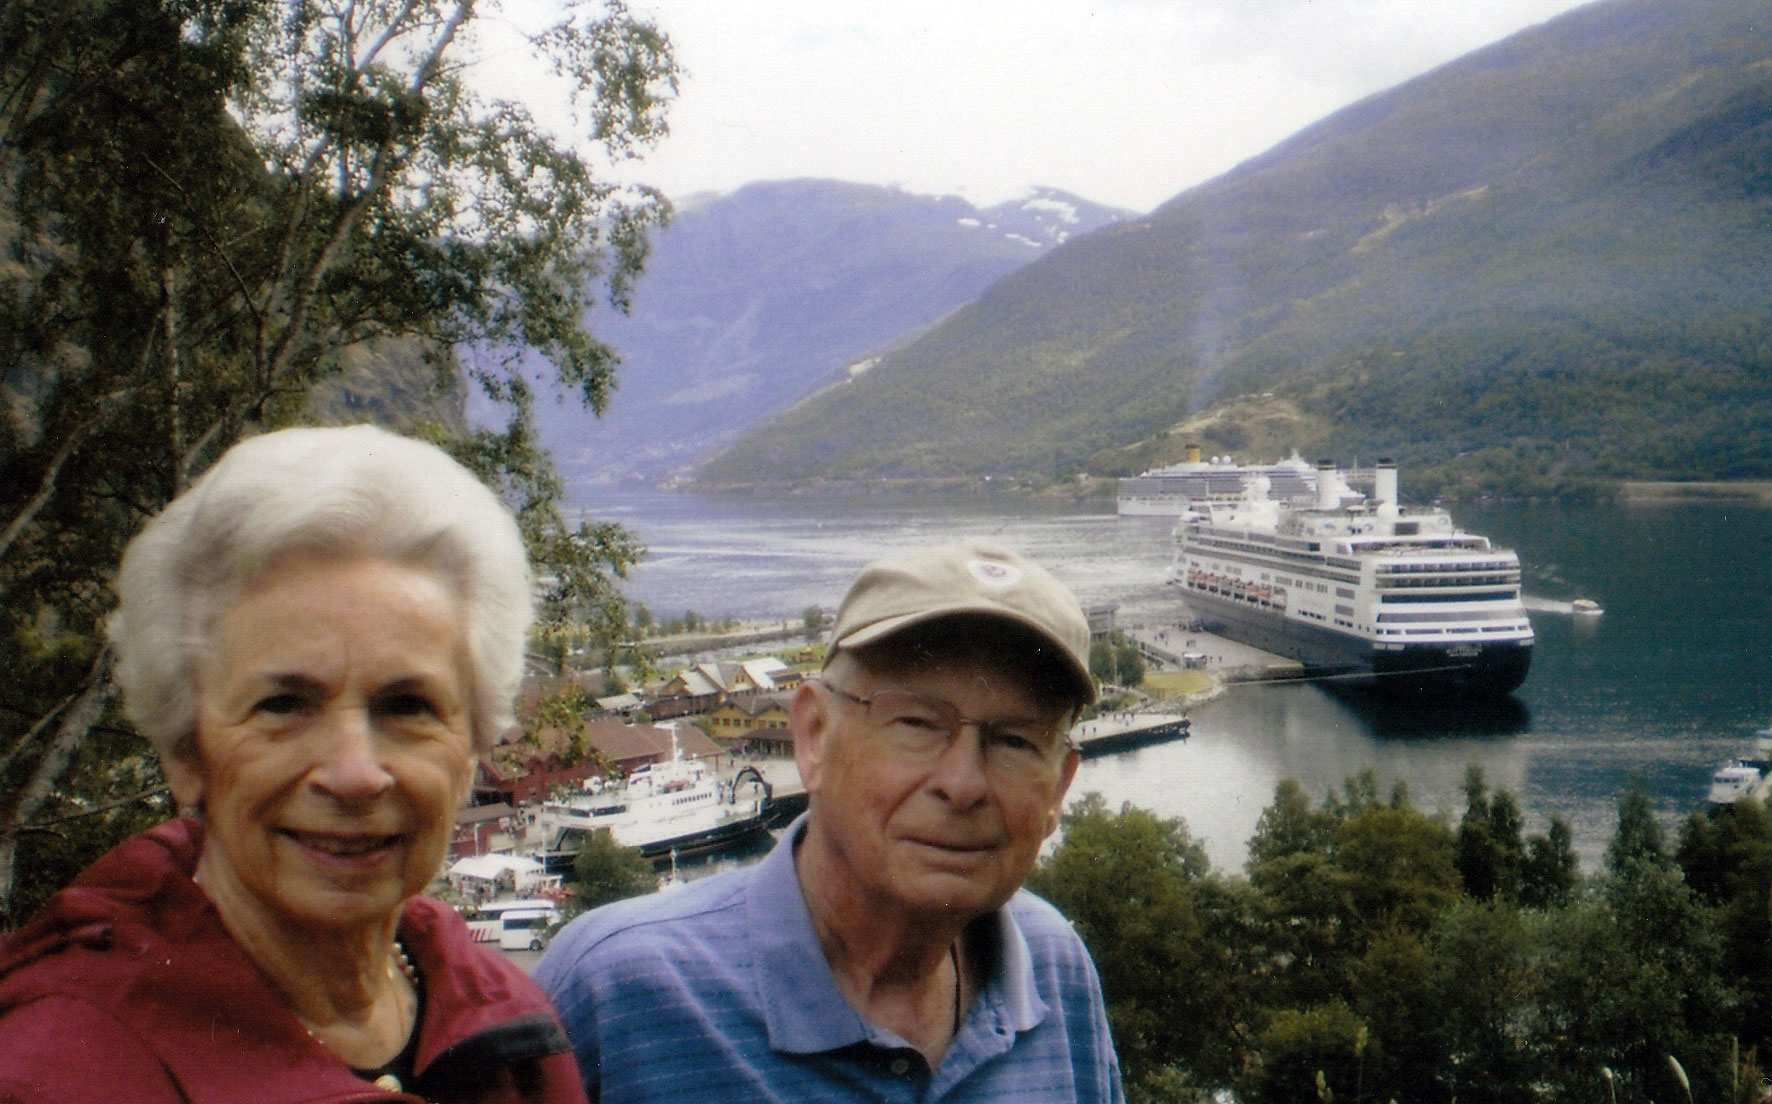 Mary Jo and John in Norway